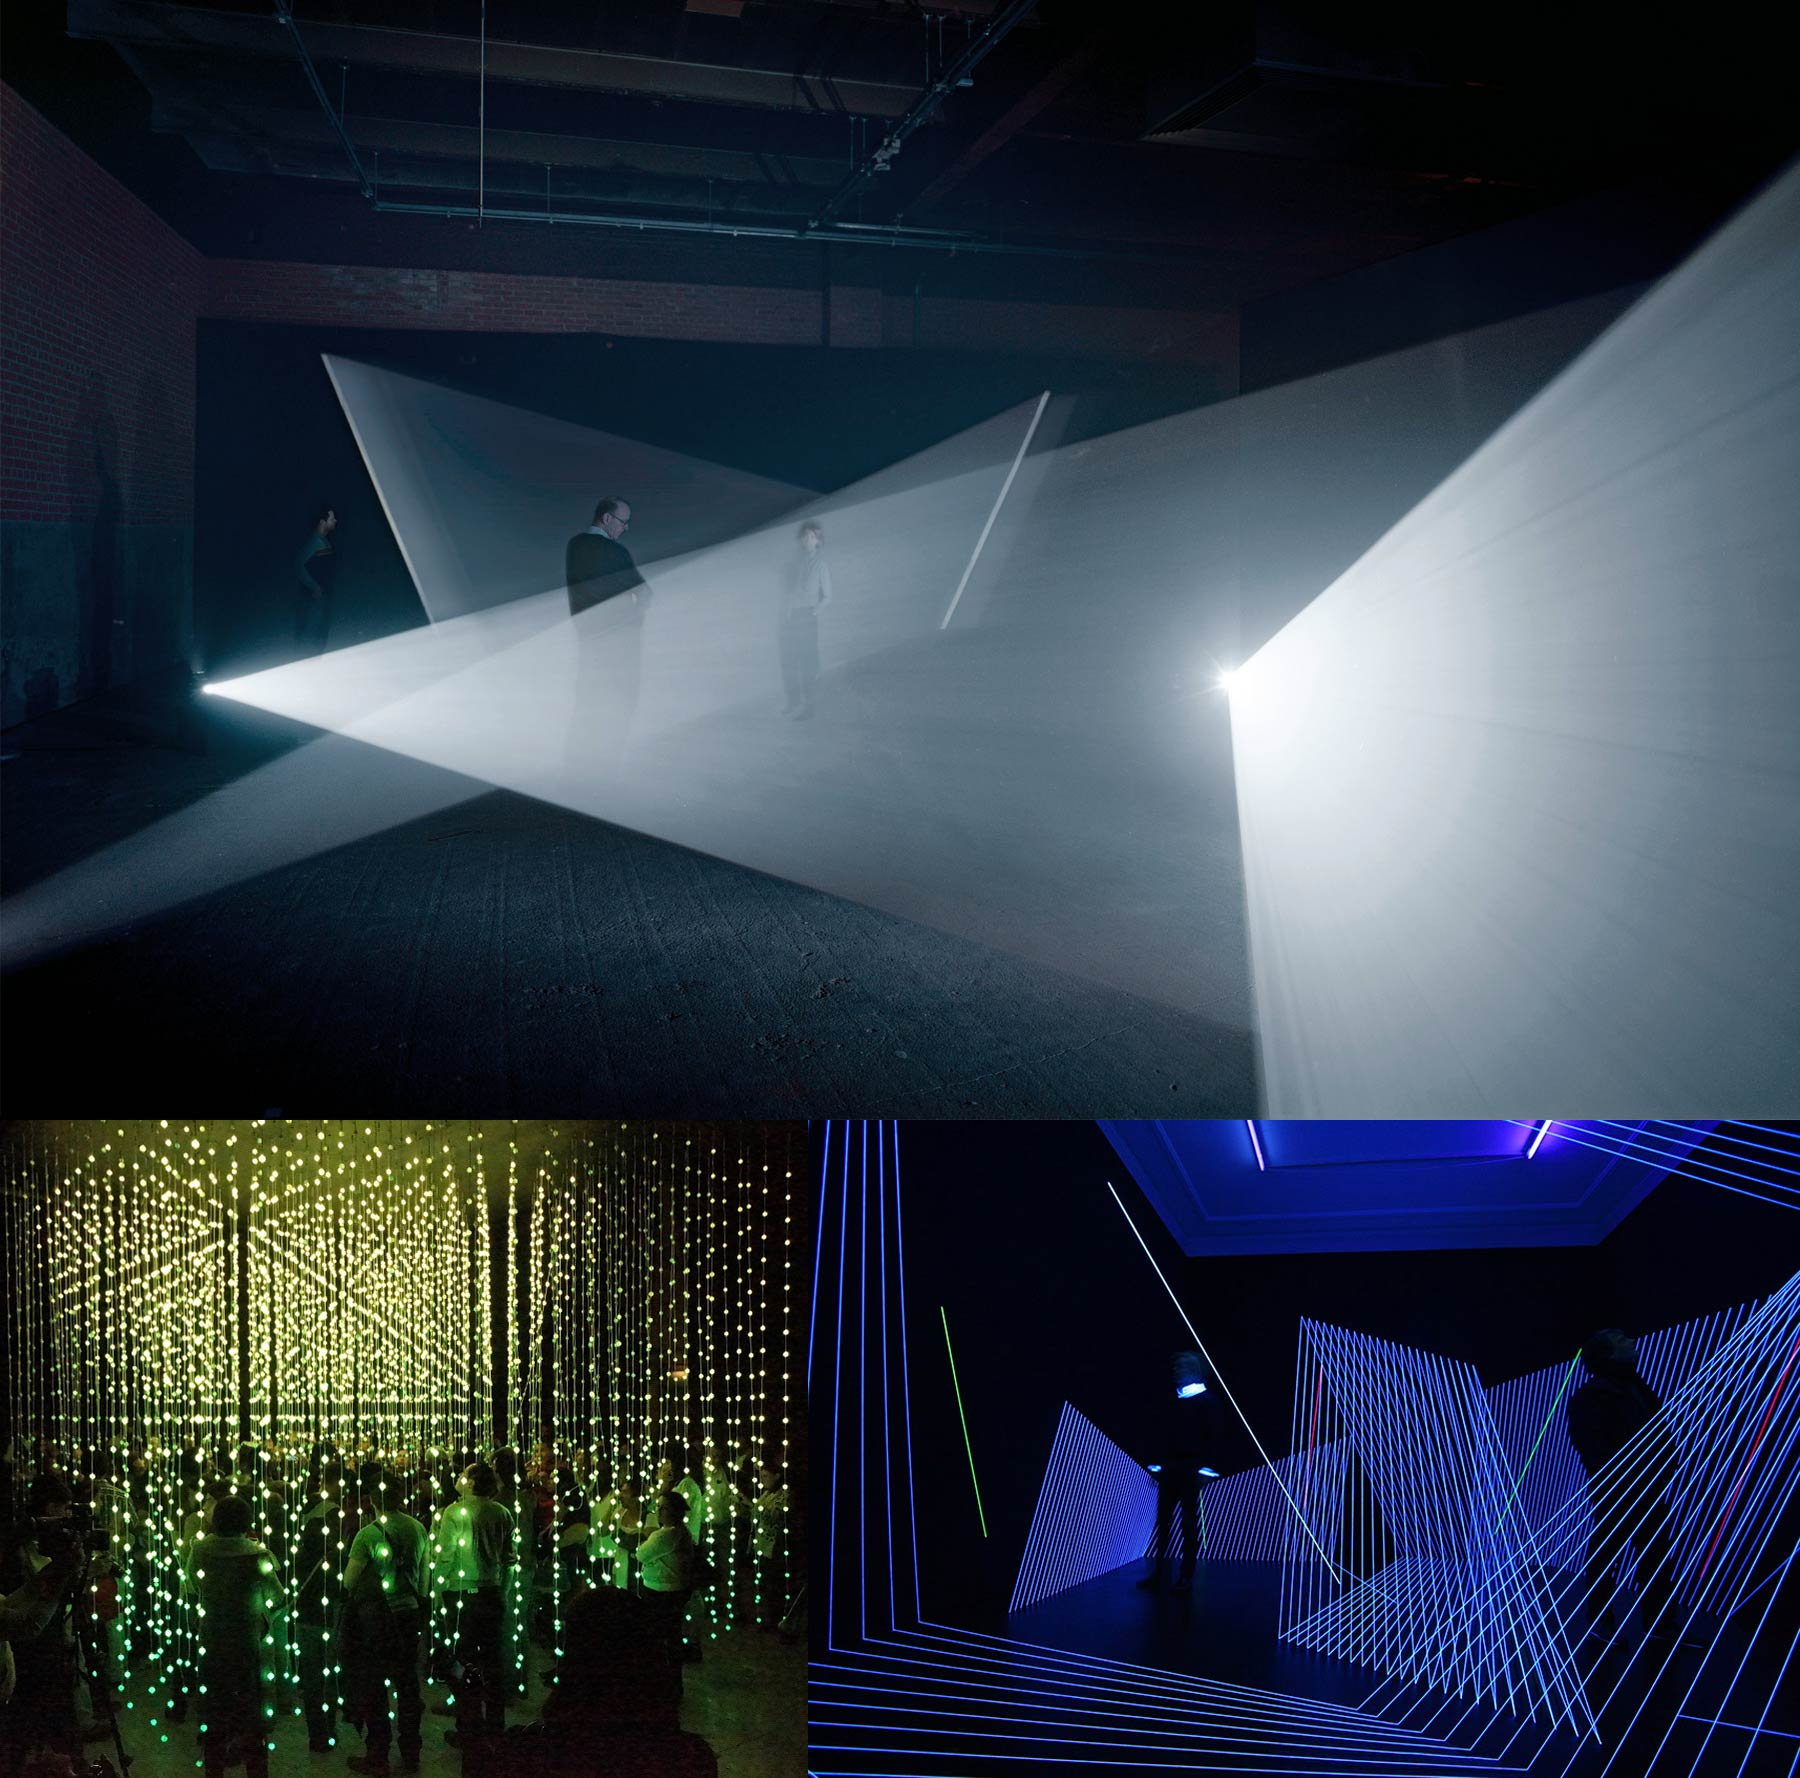 Light axes cross the room, a cube made of hanging light garlands, light axes with very graphical motifs.